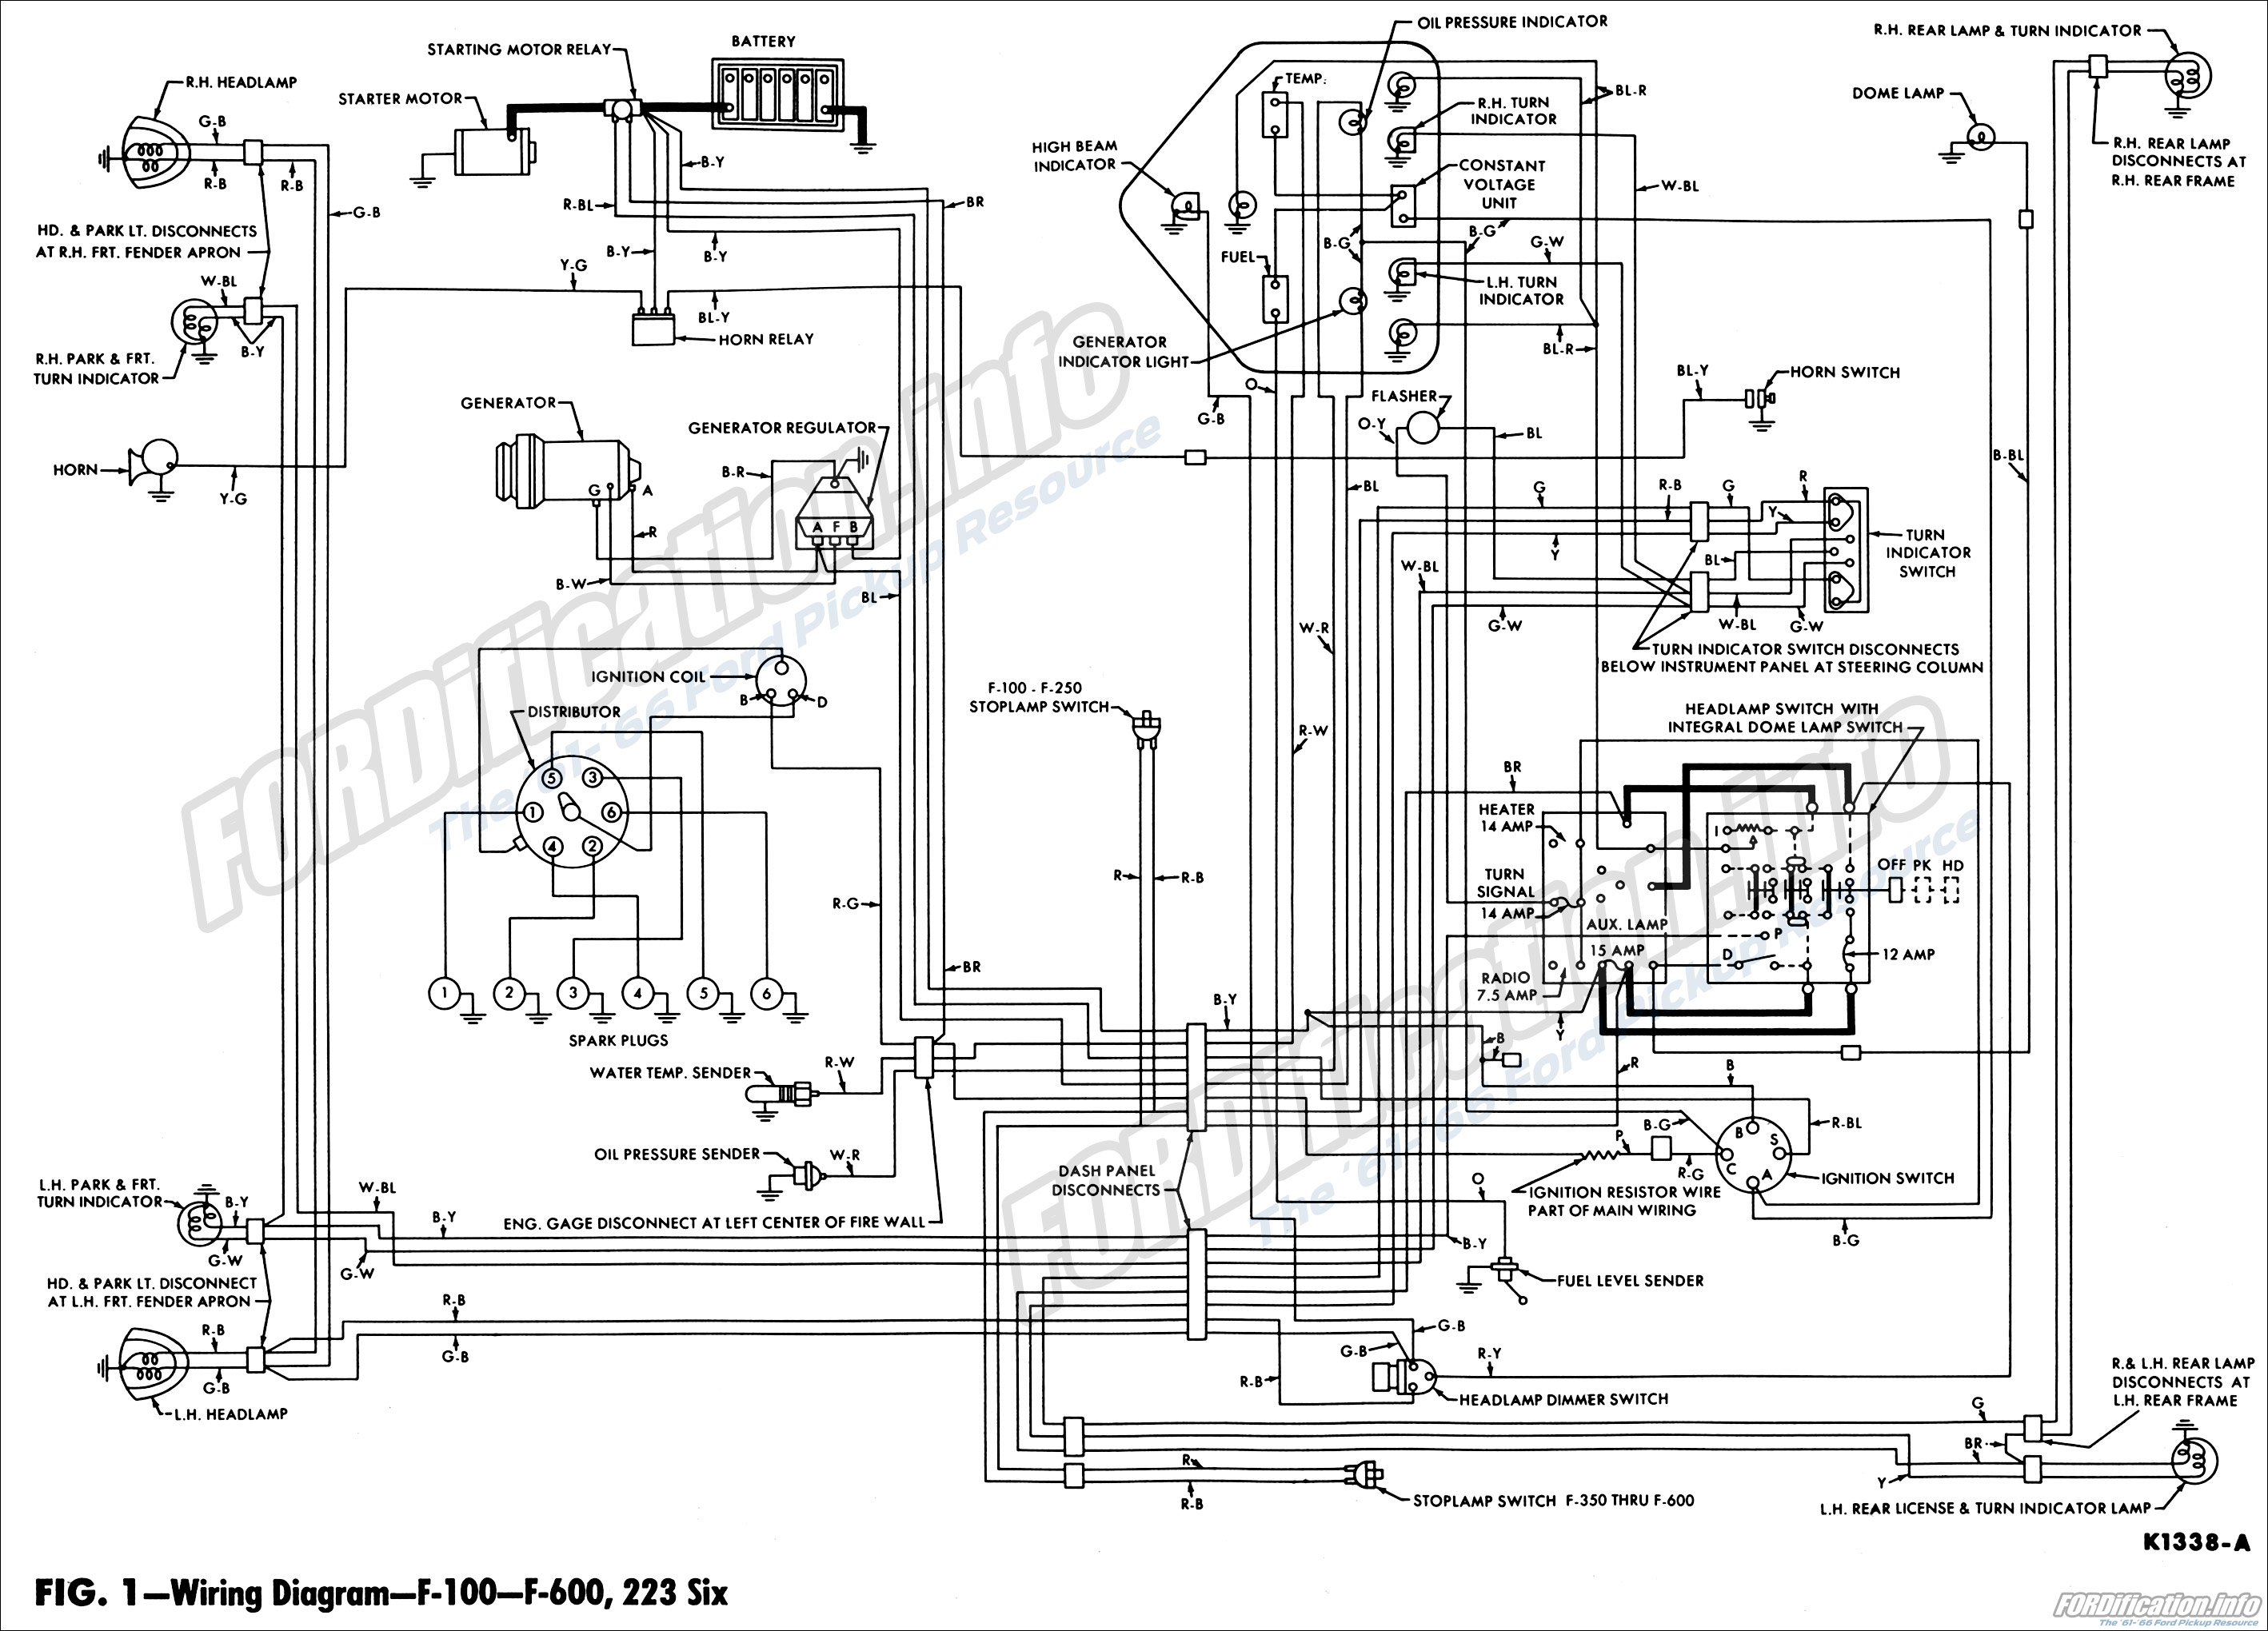 1962 Ford Truck Wiring Diagrams - FORDification.info - The '61-'66 Ford  Pickup Resource | Ford F100 Pick Up Wiring Diagrams |  | FORDification.info